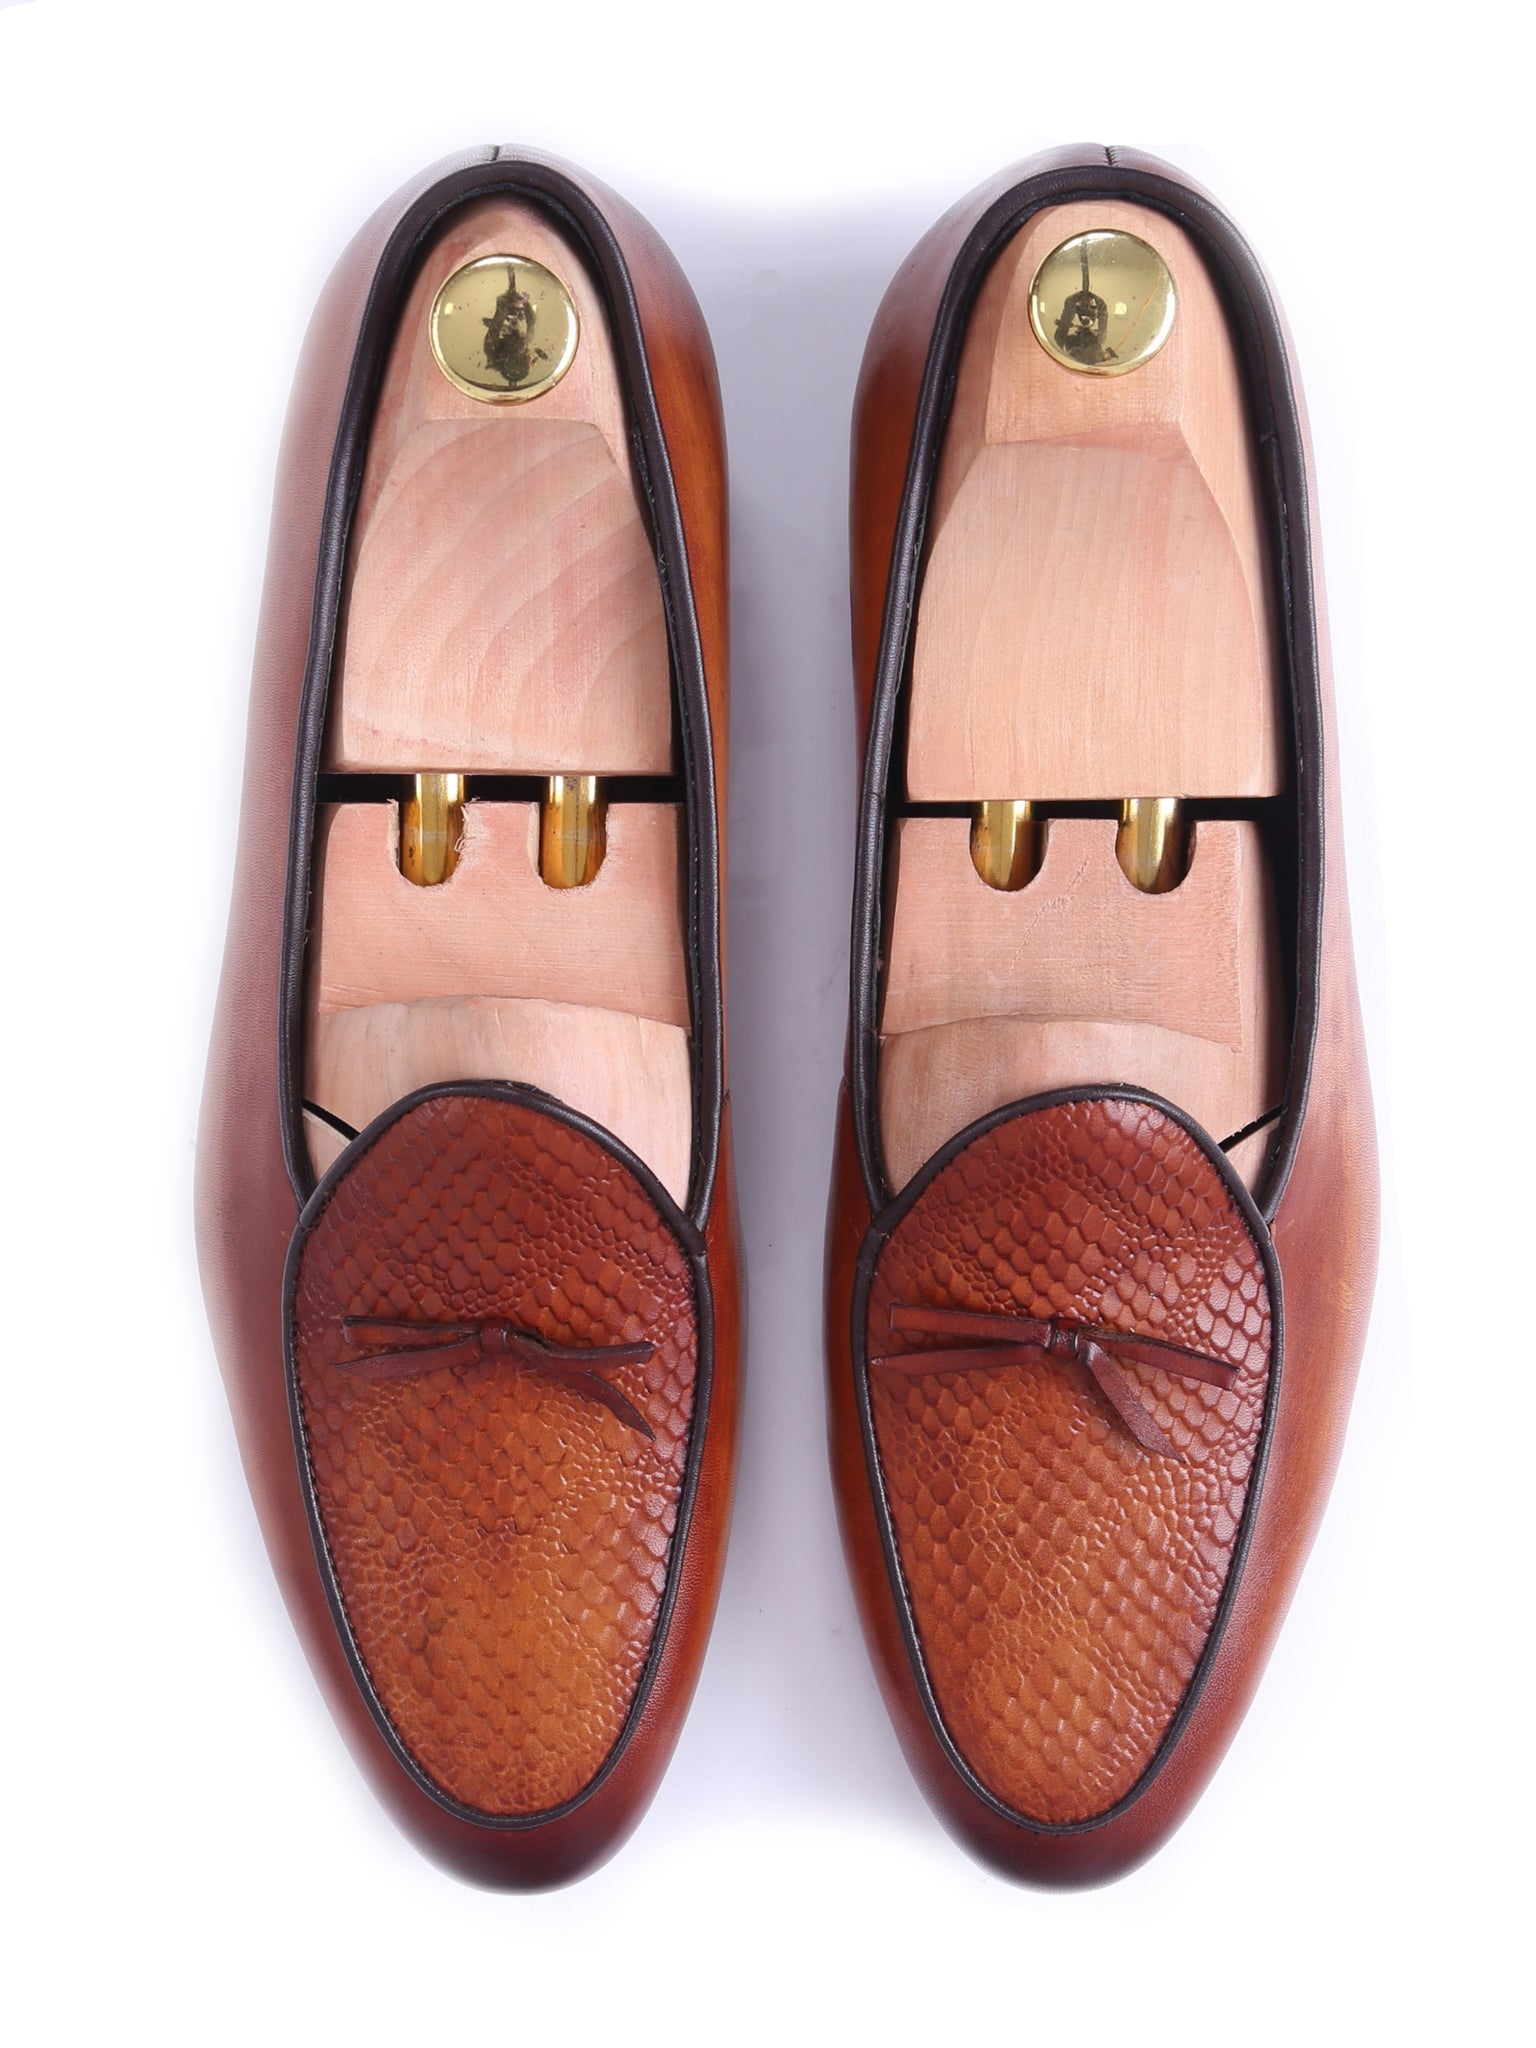 Shoes Belgian Loafer - Cognac Tan Snake Skin With Ribbon (Hand Painted Patina)